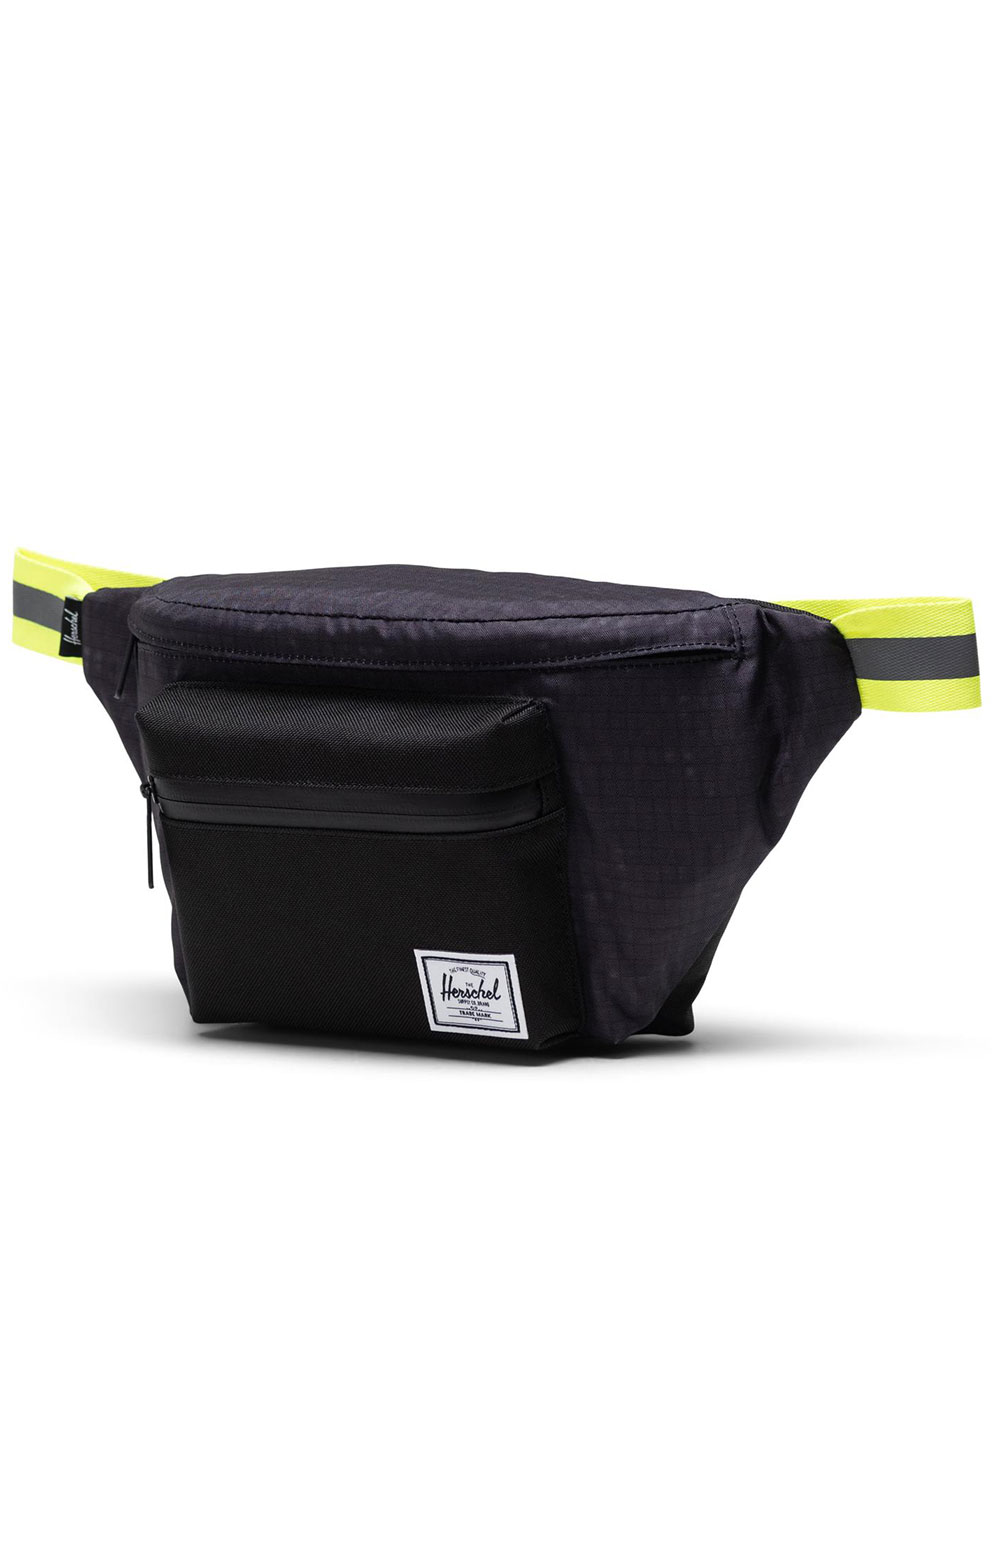 Seventeen Hip Pack - Black Enzyme Ripstop/Black/Safety Yellow 3